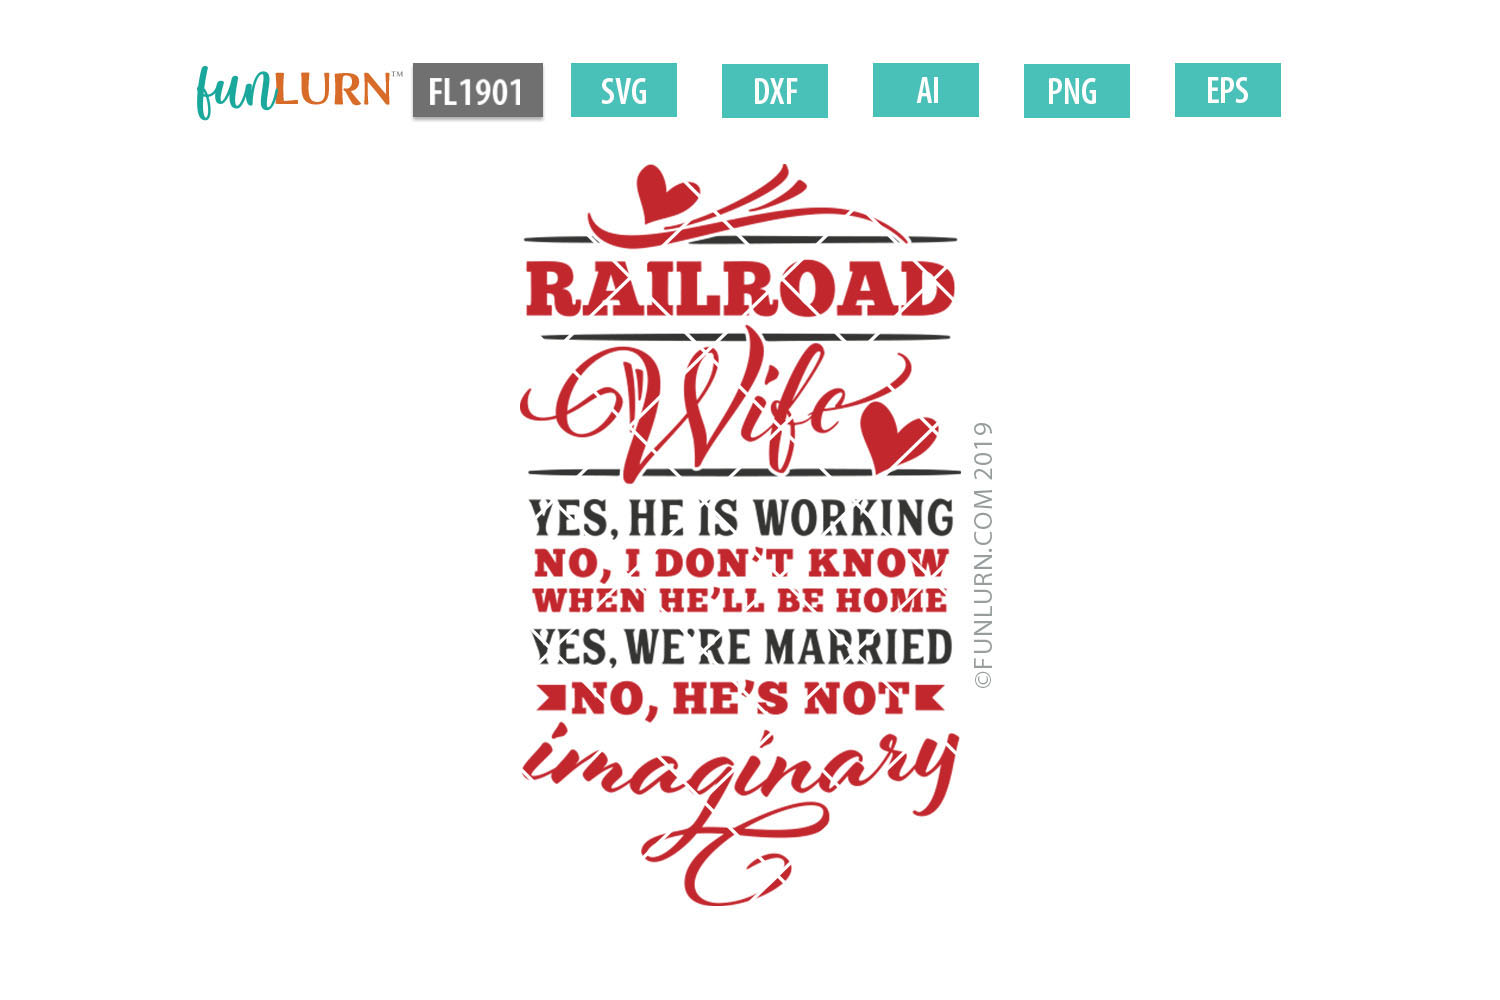 Railroad Wife Yes He Is Working SVG Cut File example image 2